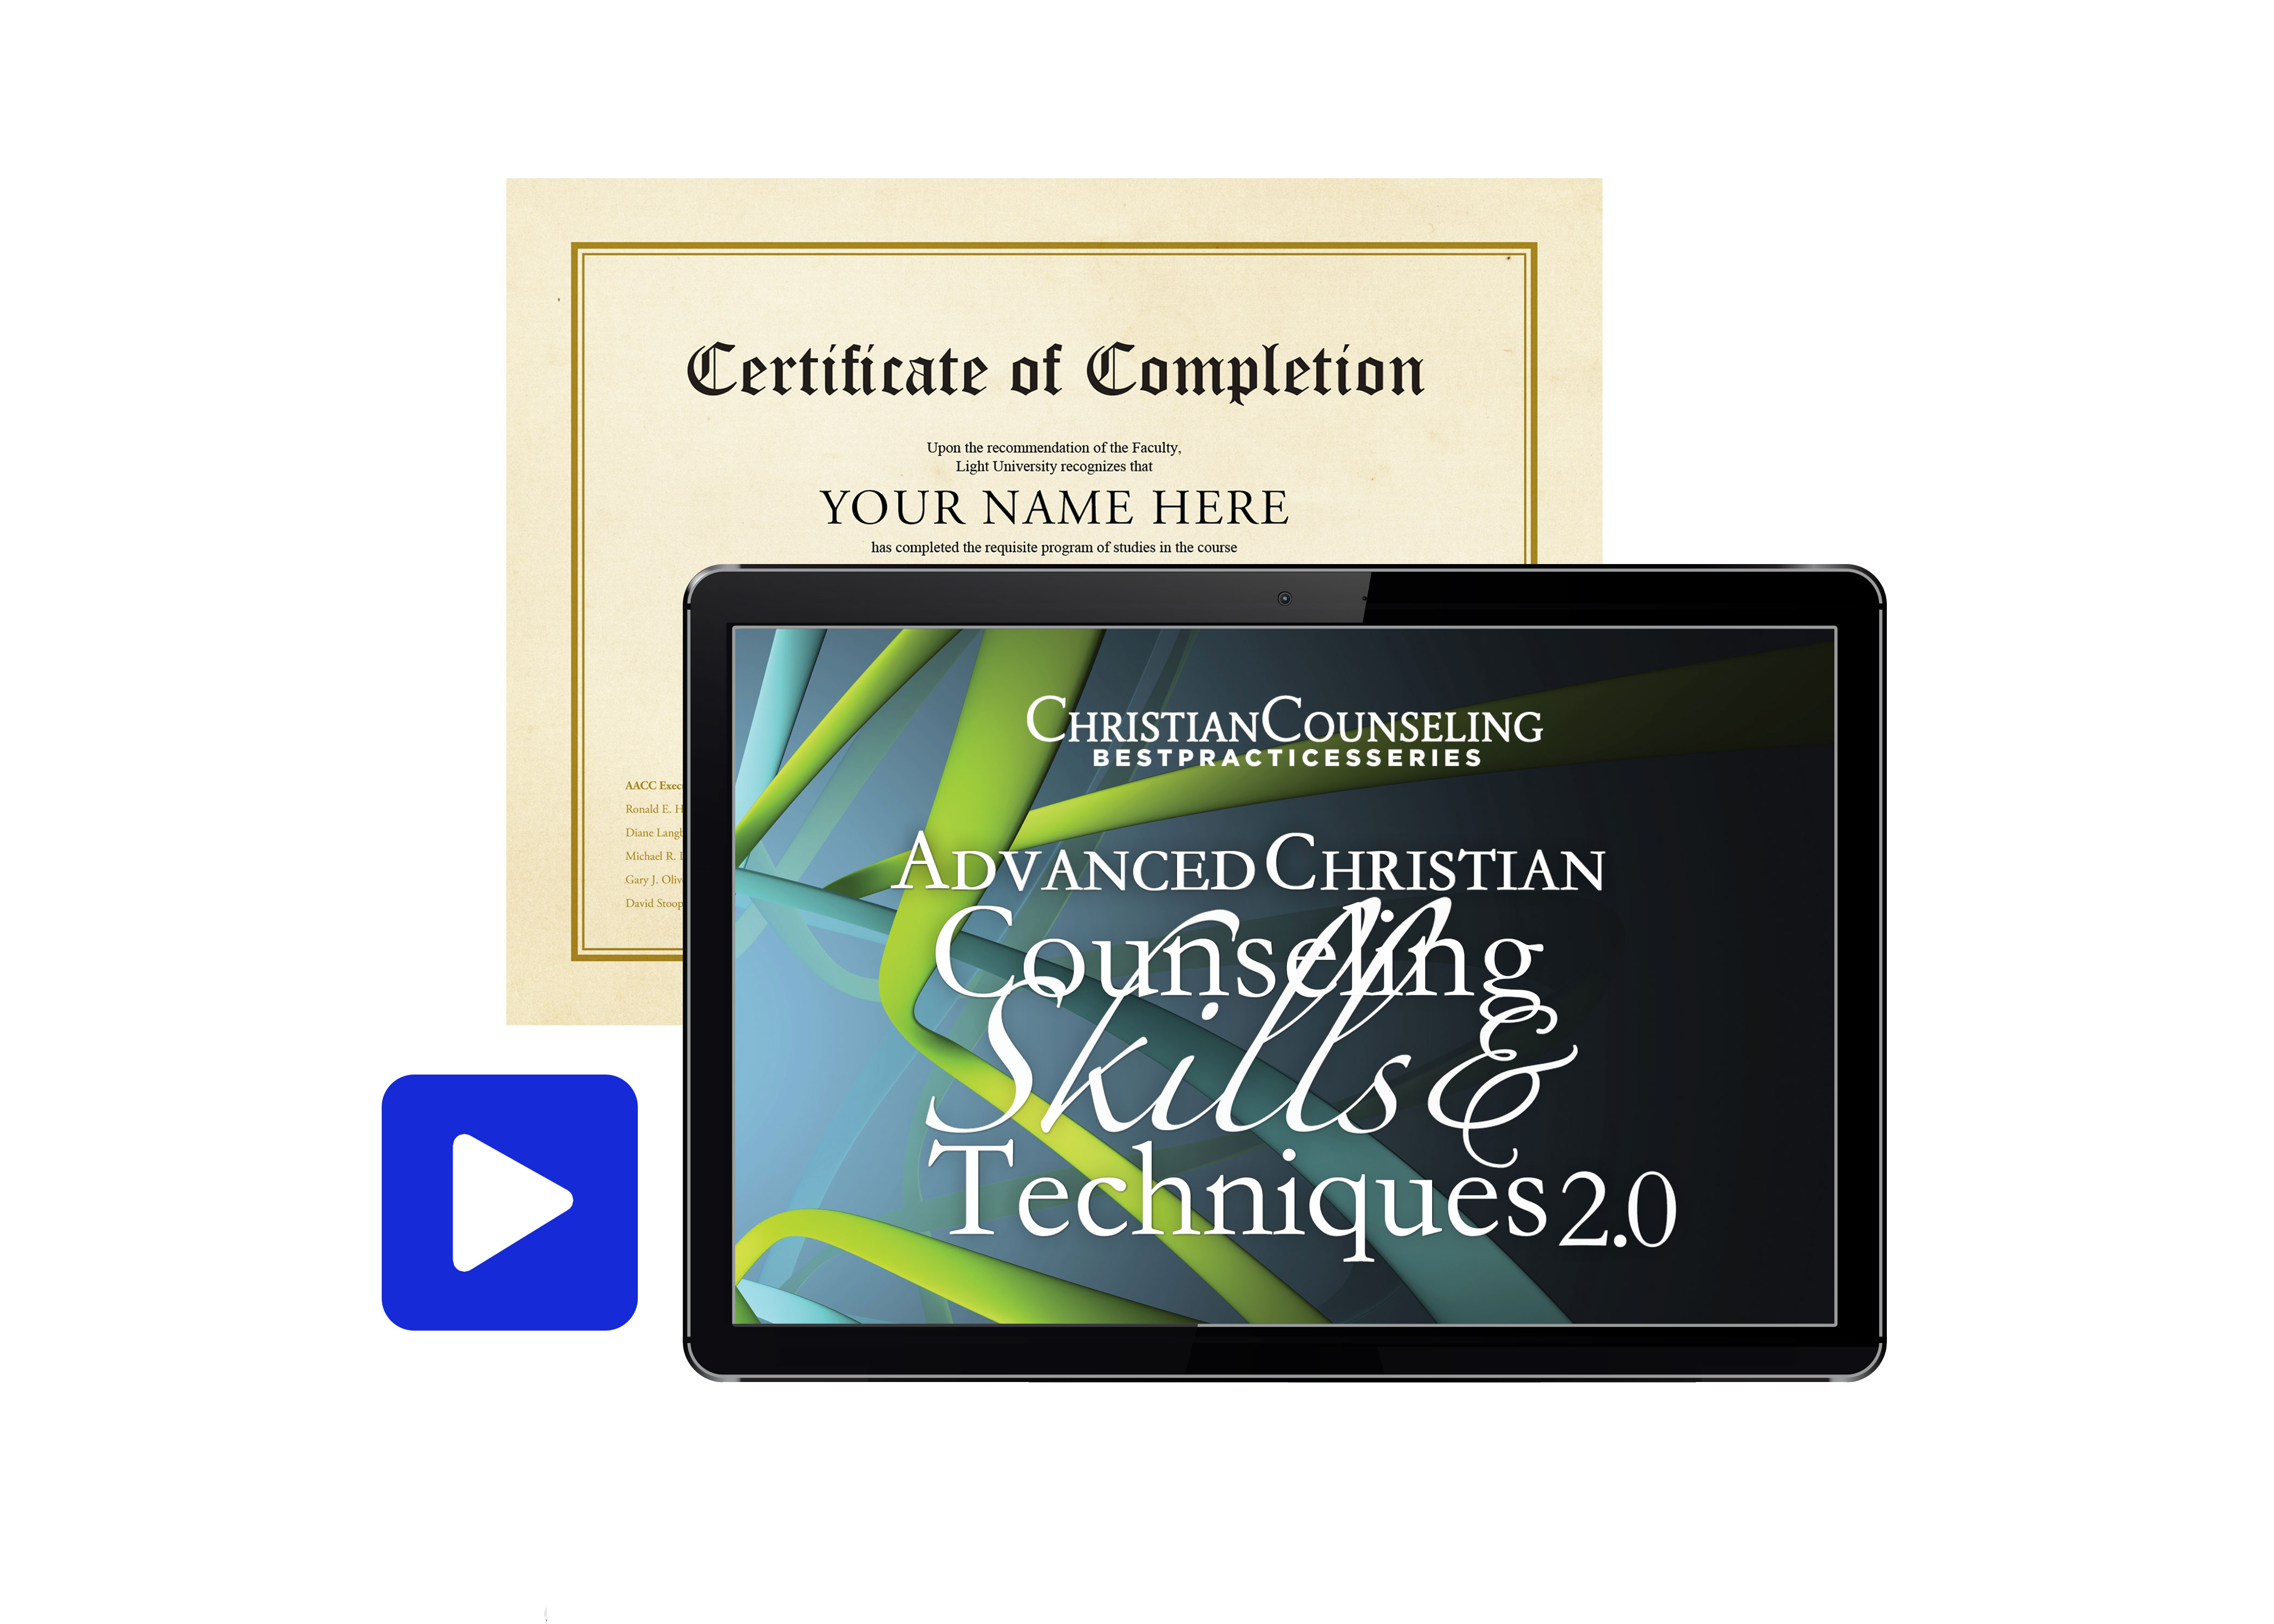 Advanced Christian Counseling Skills and Techniques 2.0